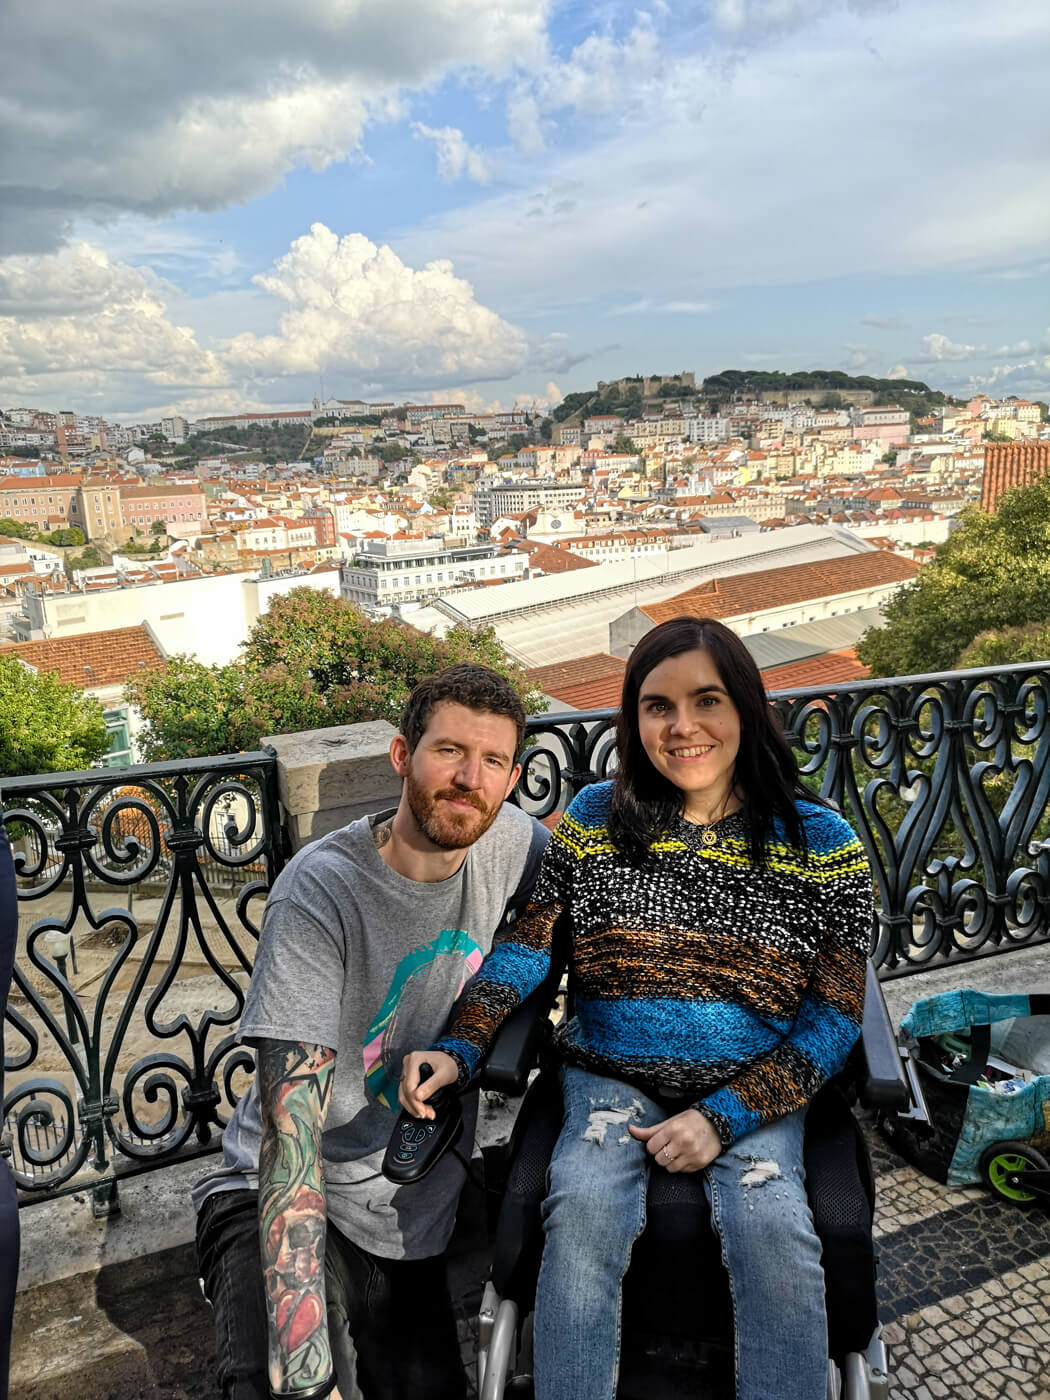 Emma sitting in her wheelchair with Allan, her partner kneeling beside her. They are smiling at the camera with the view of Lisbon city behind them while at the Jardim de São Pedro de Alcântara viewpoint in Lisbon